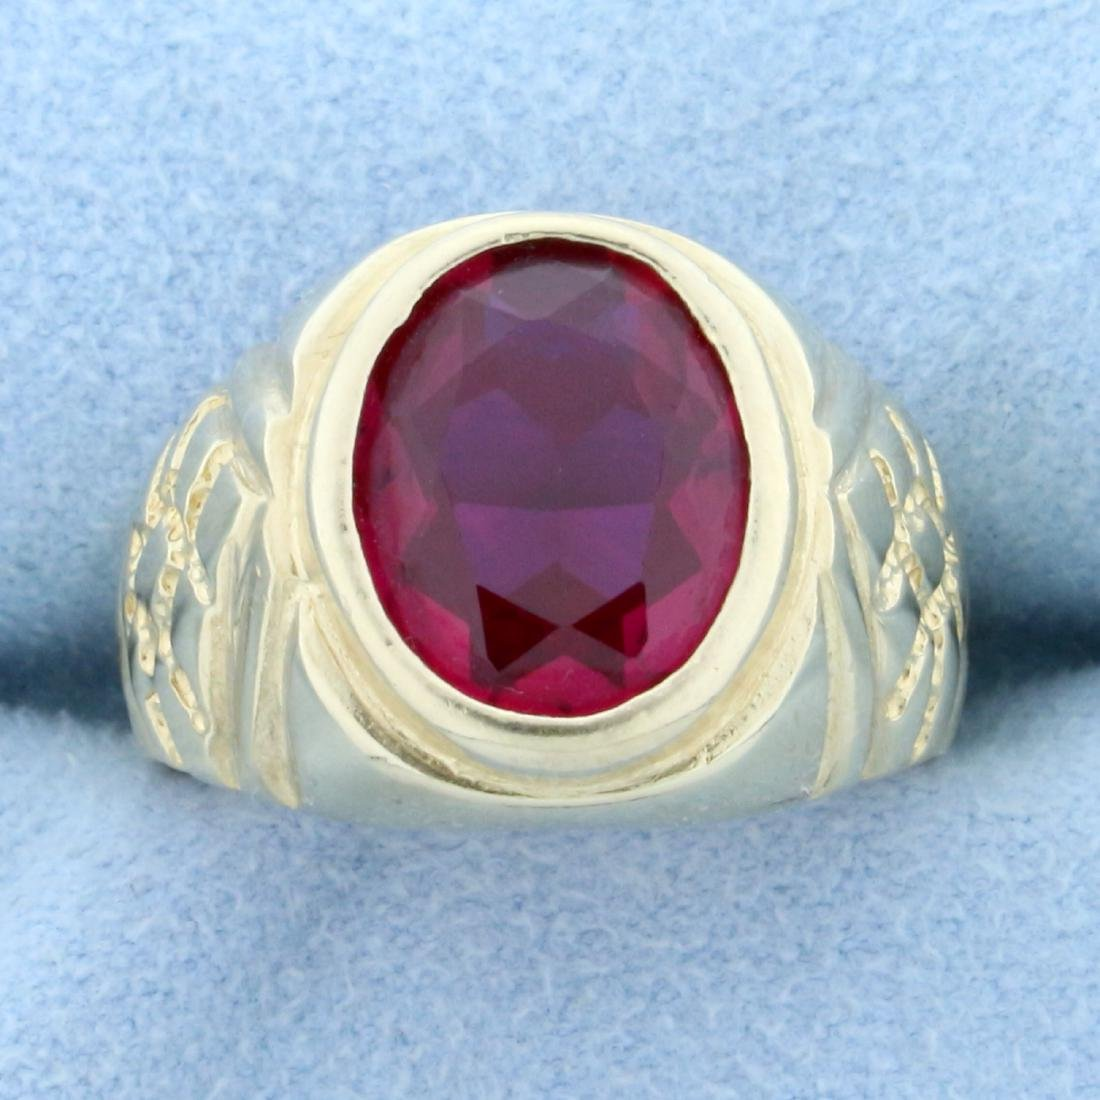 5ct Ruby Solitaire Ring in 14K Yellow Gold